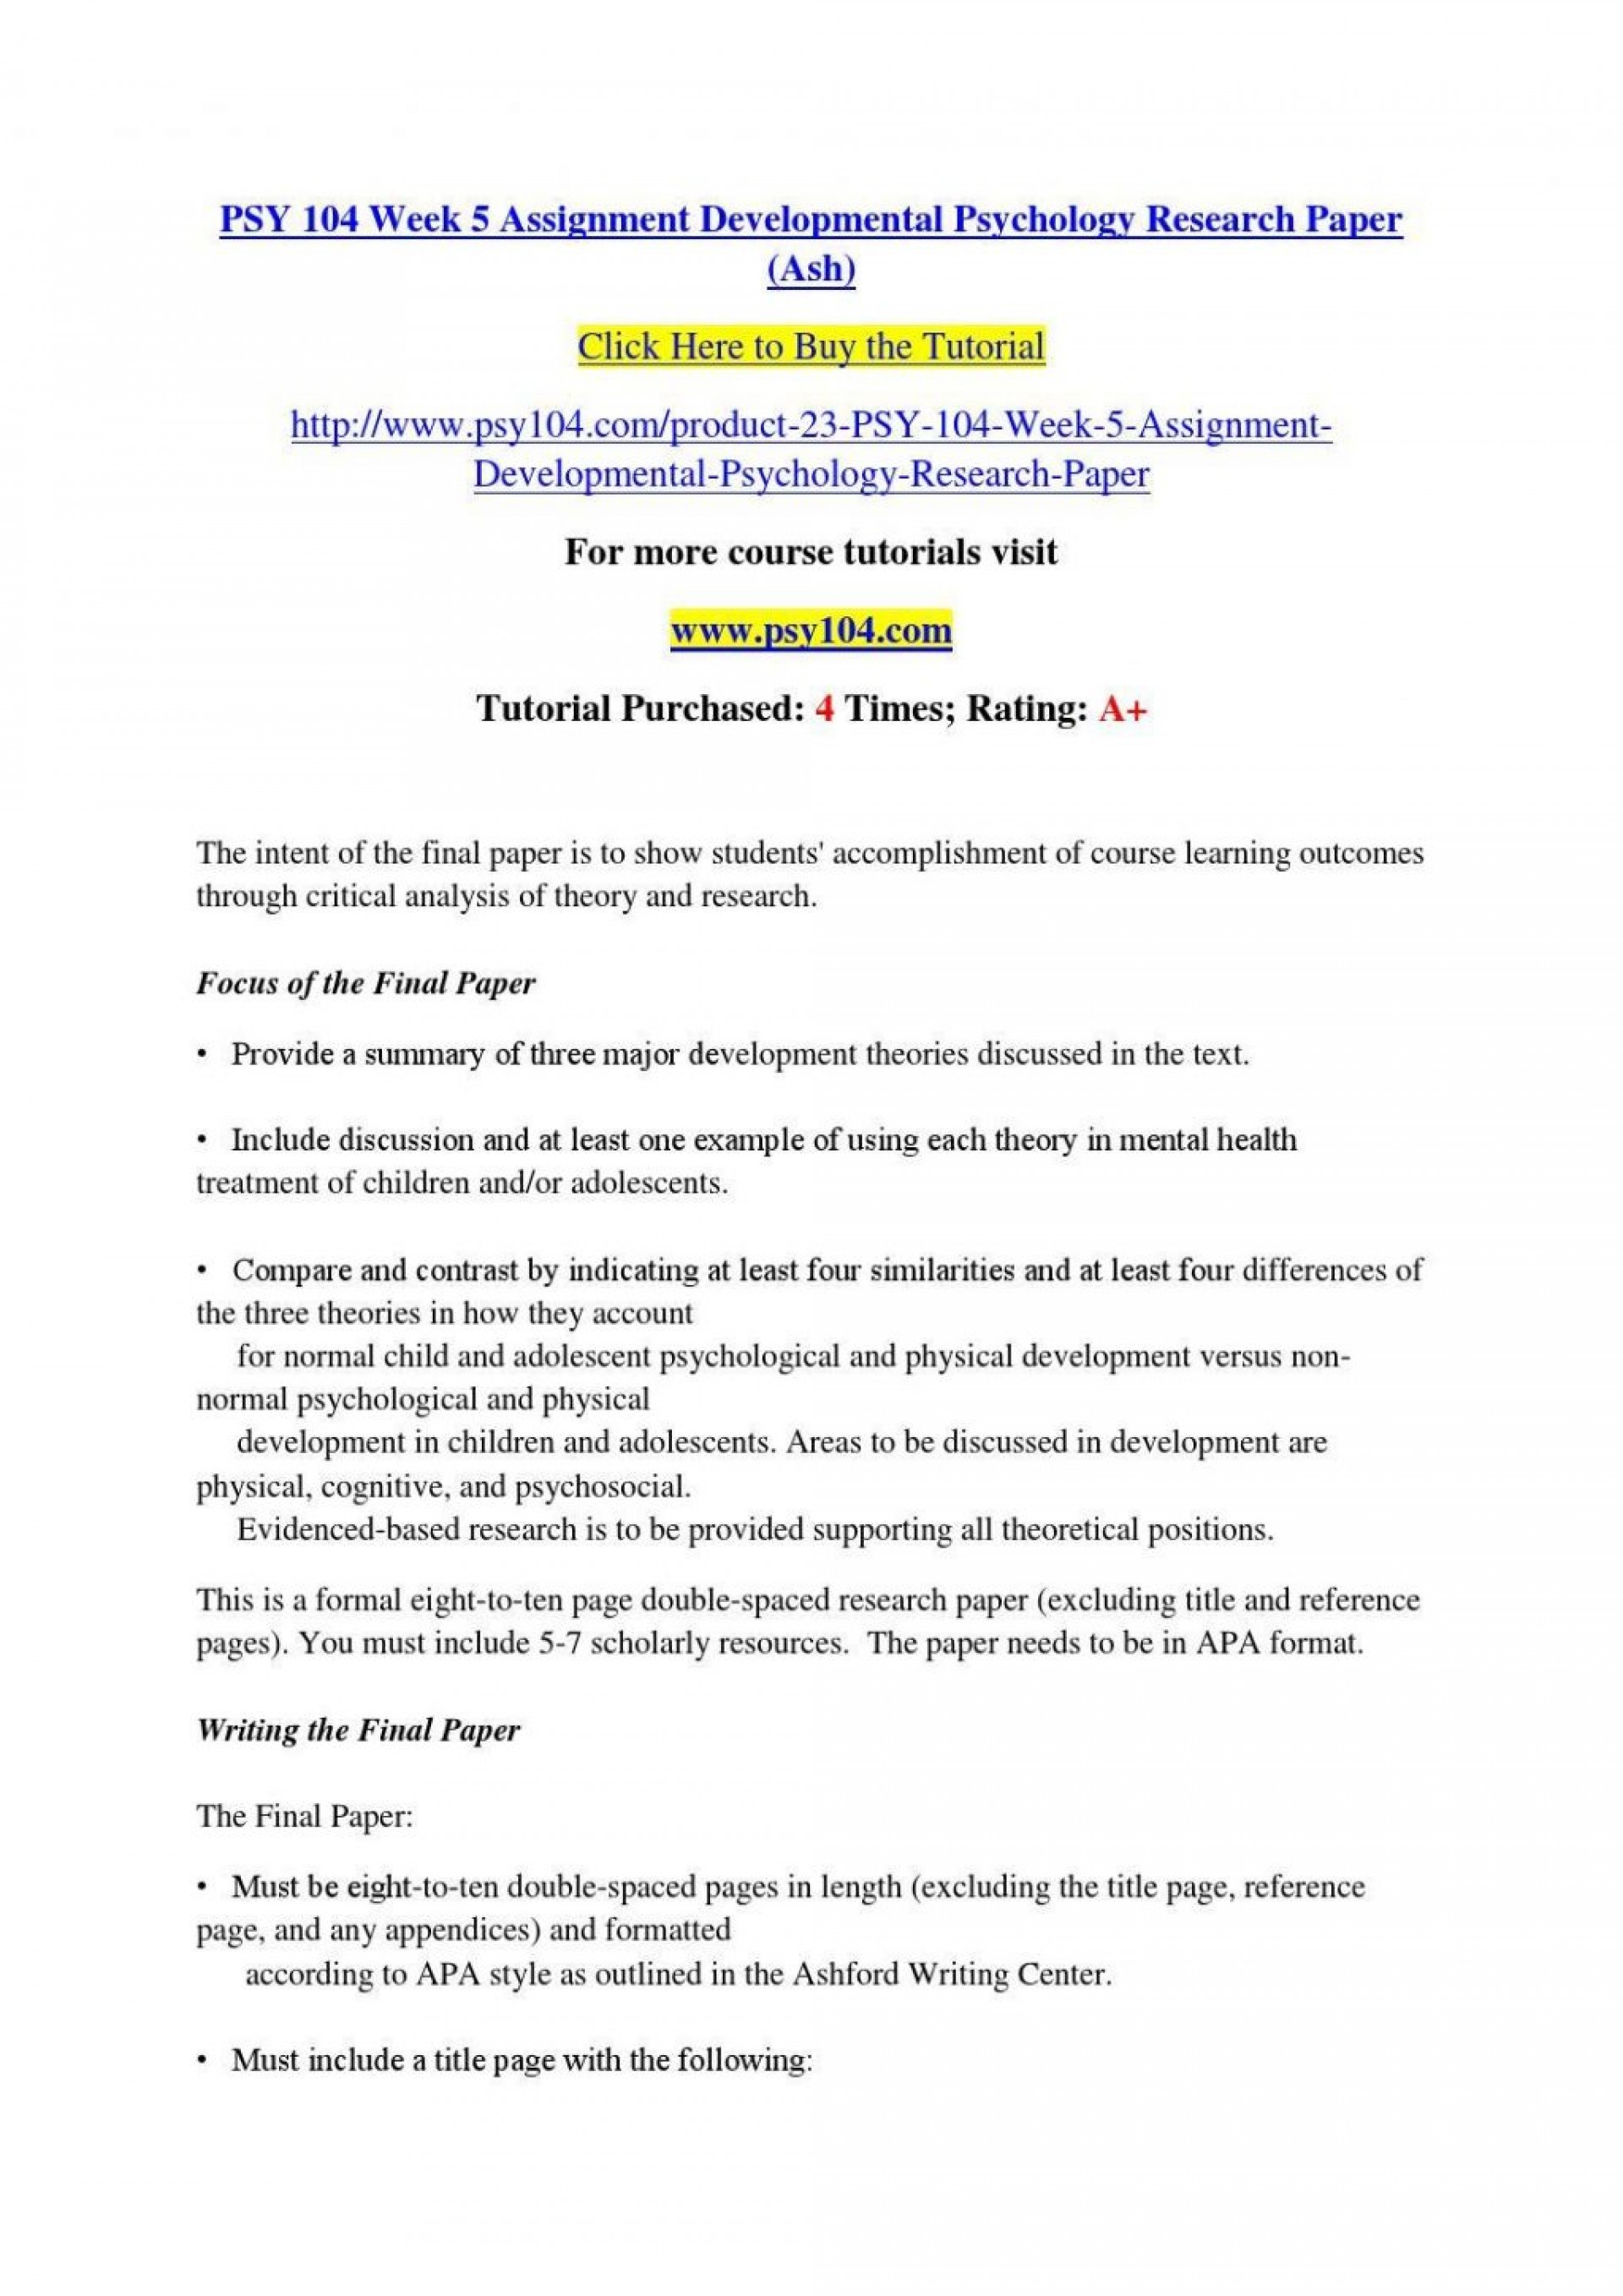 003 Developmental Psychology Essay Ideas Structure Psychological20ent Paper Topics Pdf20 1024x1449 For Dreaded Research Potential 1920